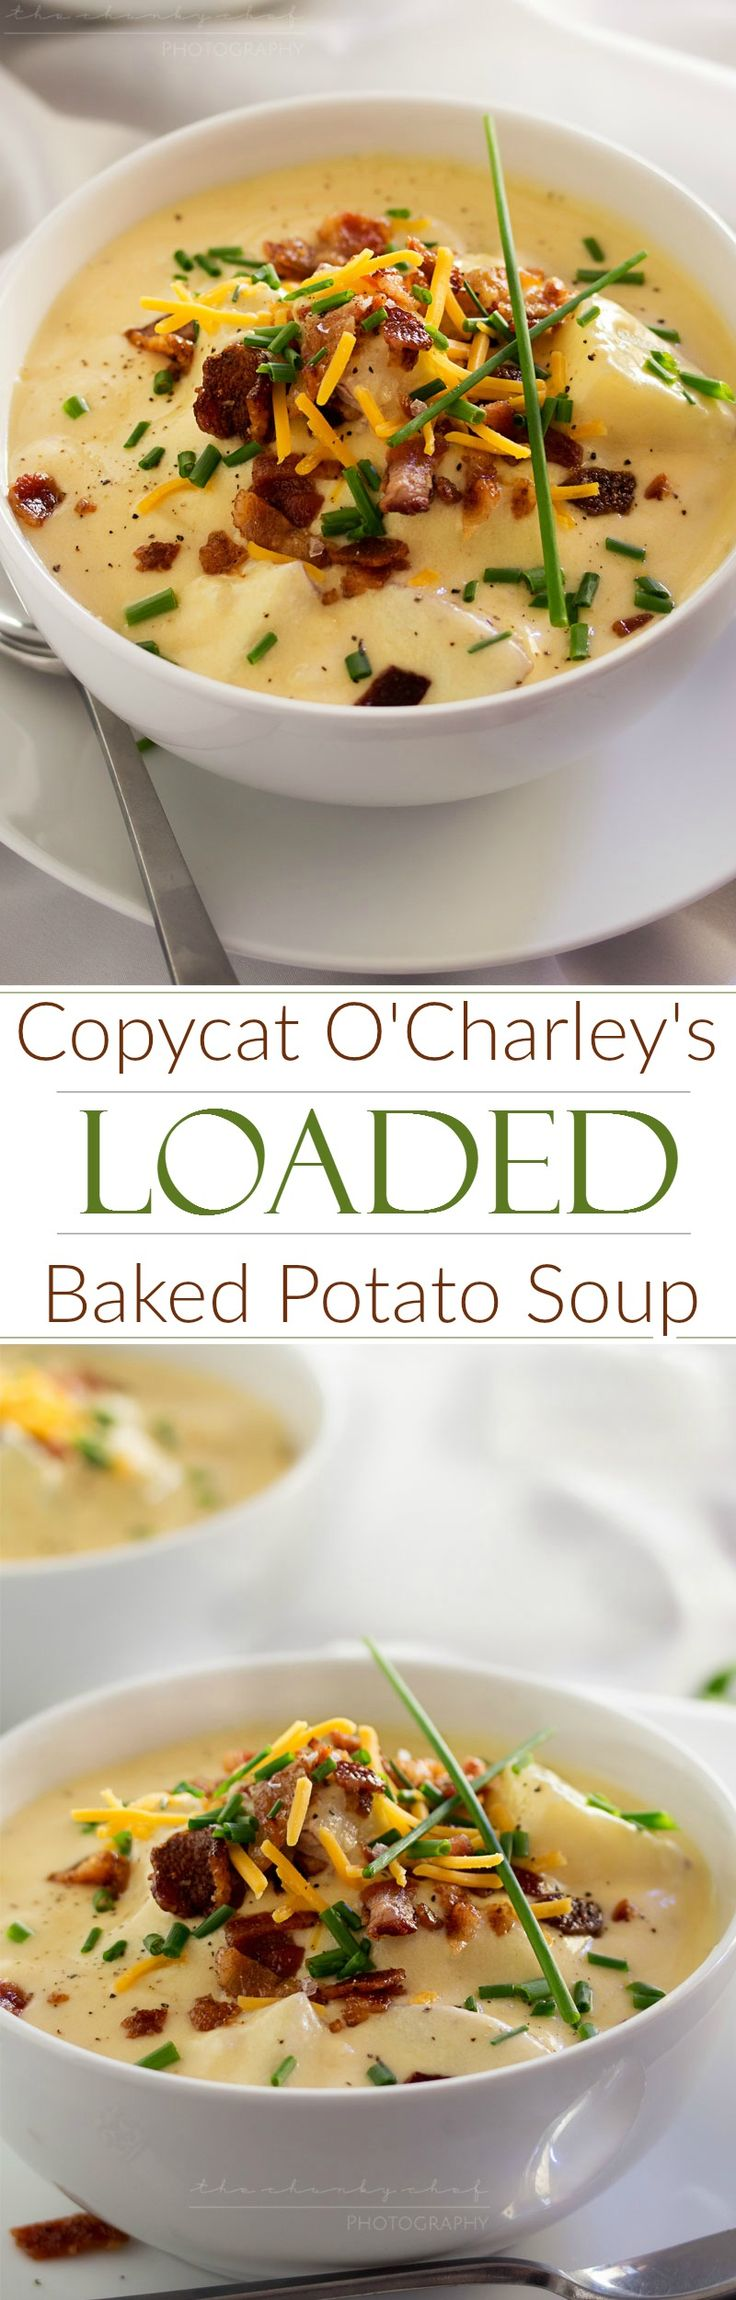 Copycat Loaded Baked Potato Soup - Creamy and thick, this potato soup is topped with savory cheese, fresh chives and crumbled bacon.